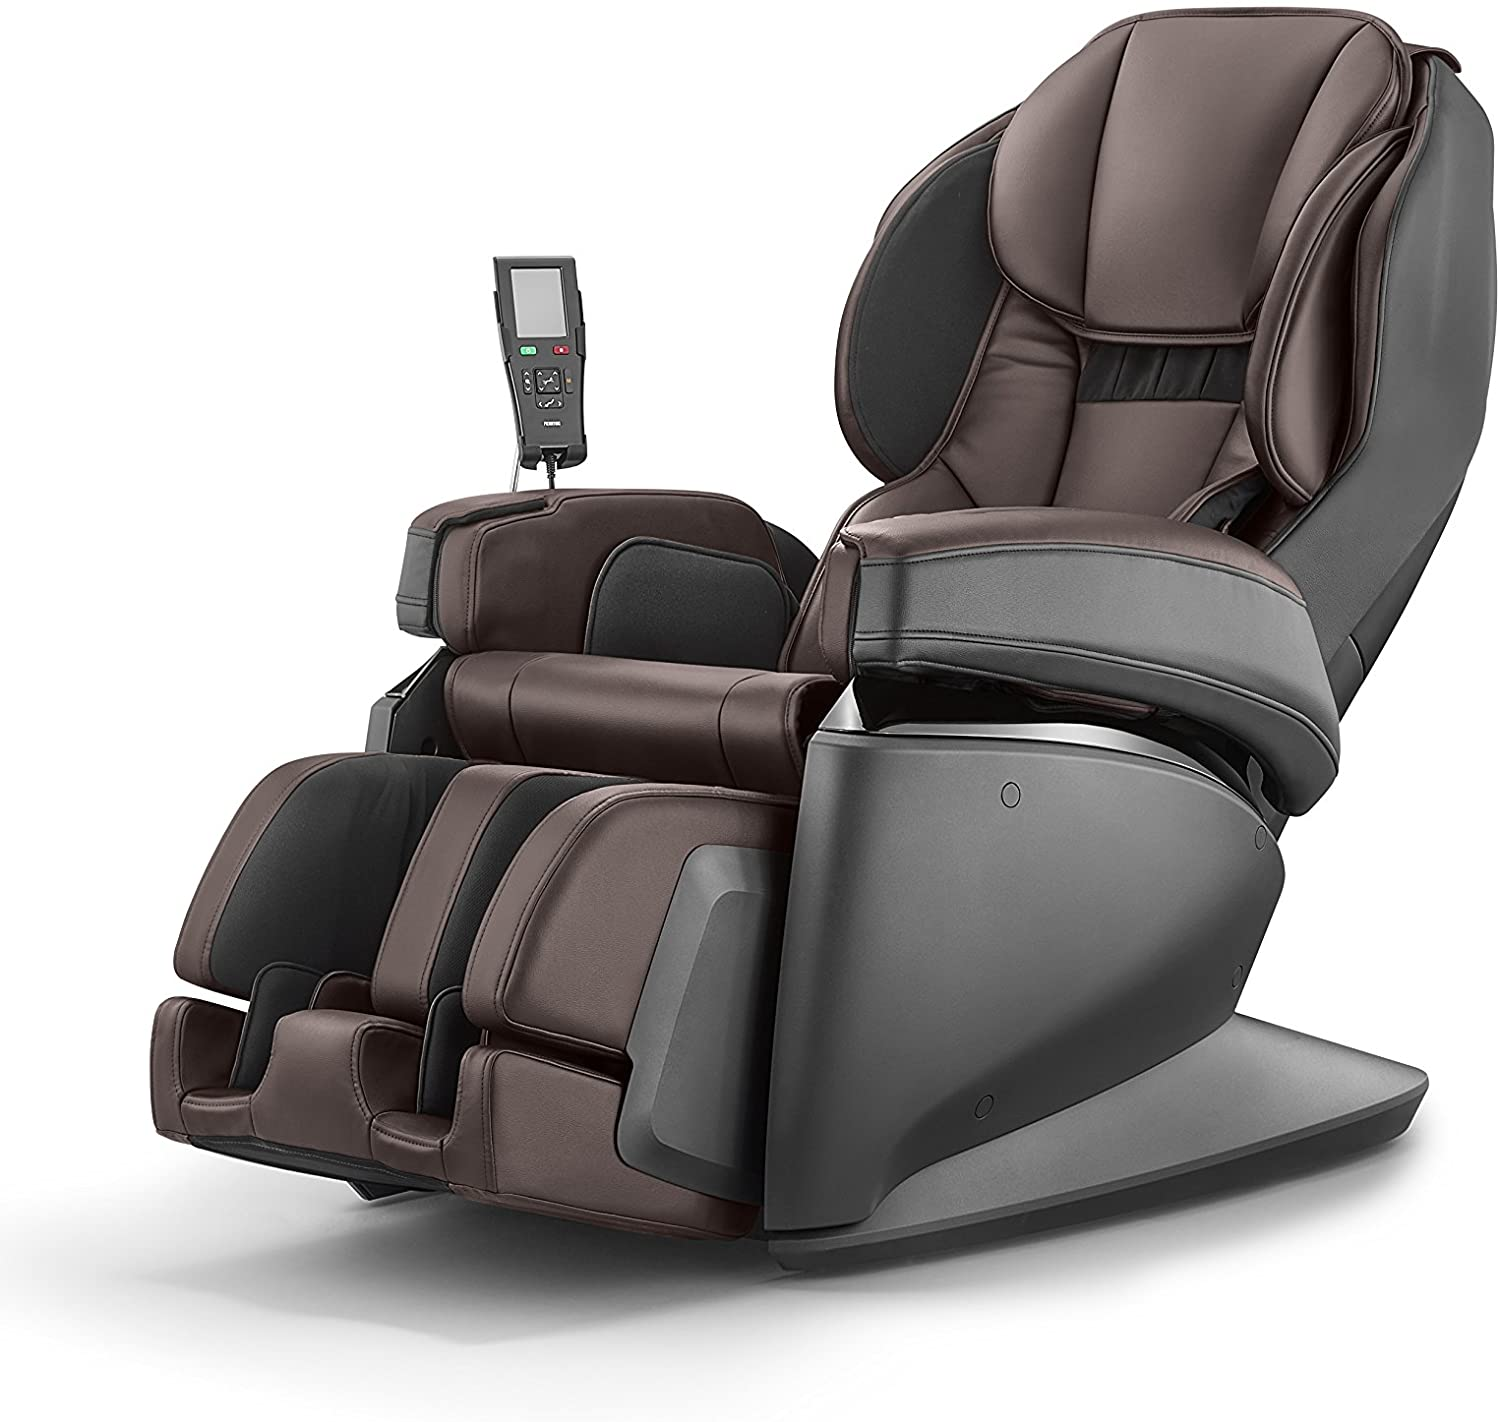 Best Massage Chair For Home